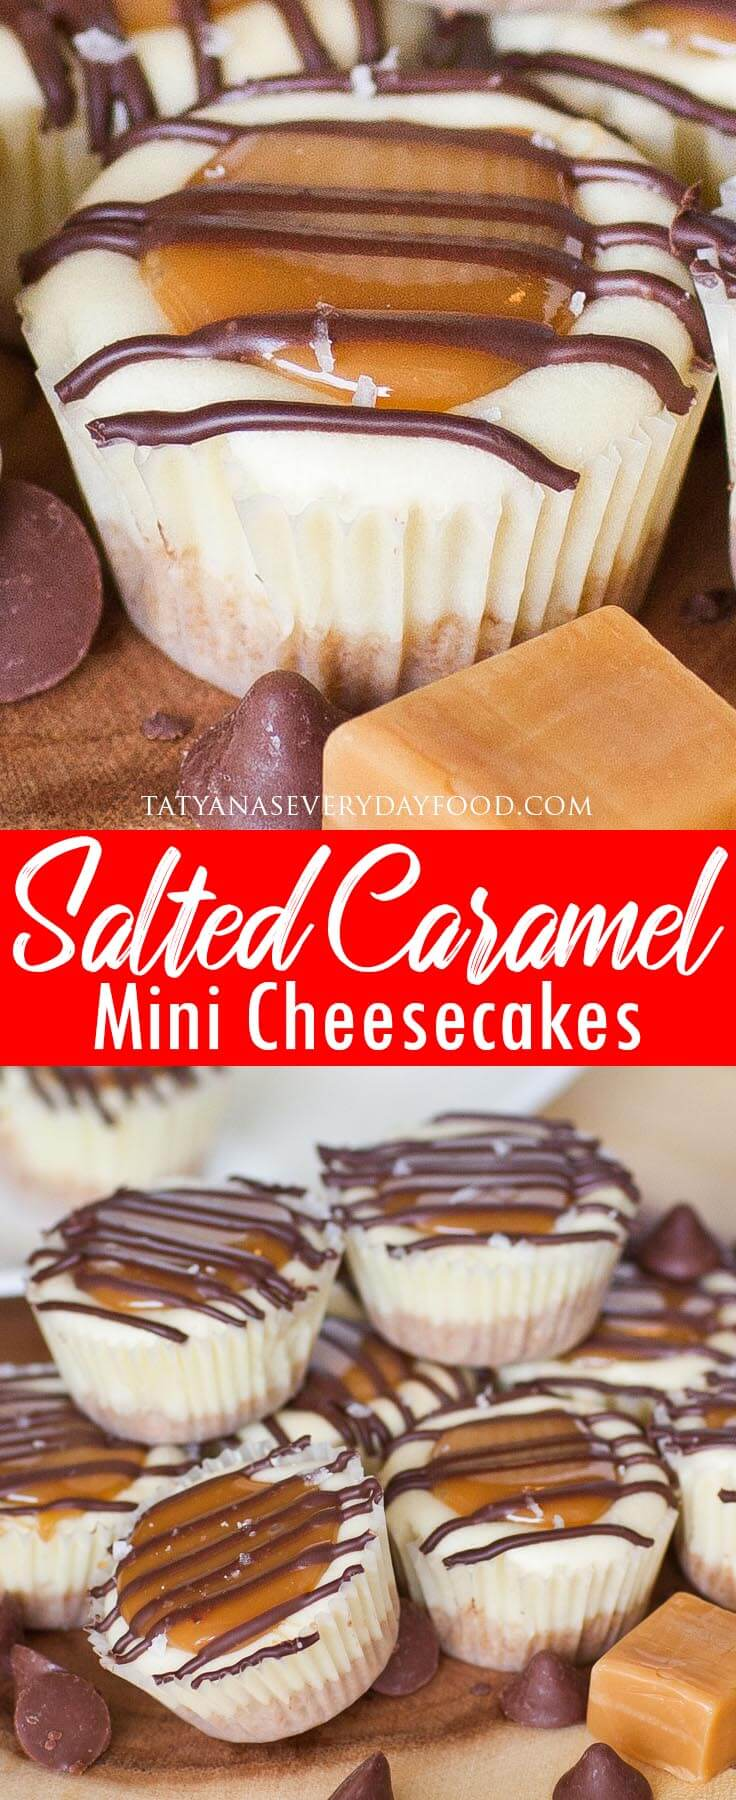 Salted Caramel Mini Cheesecakes video recipe